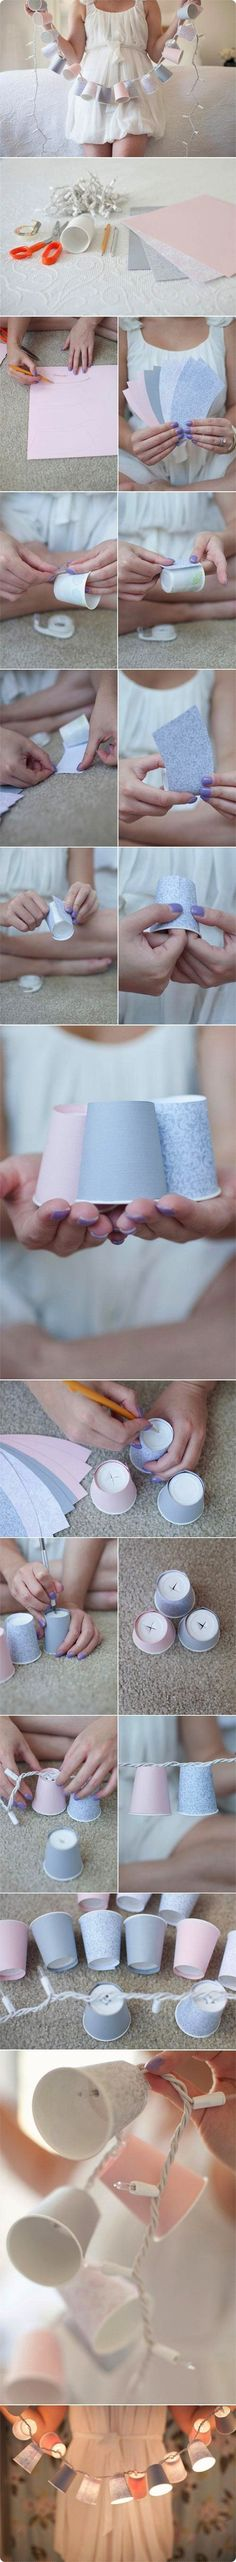 Definitely going to be making these homemade paper lanterns